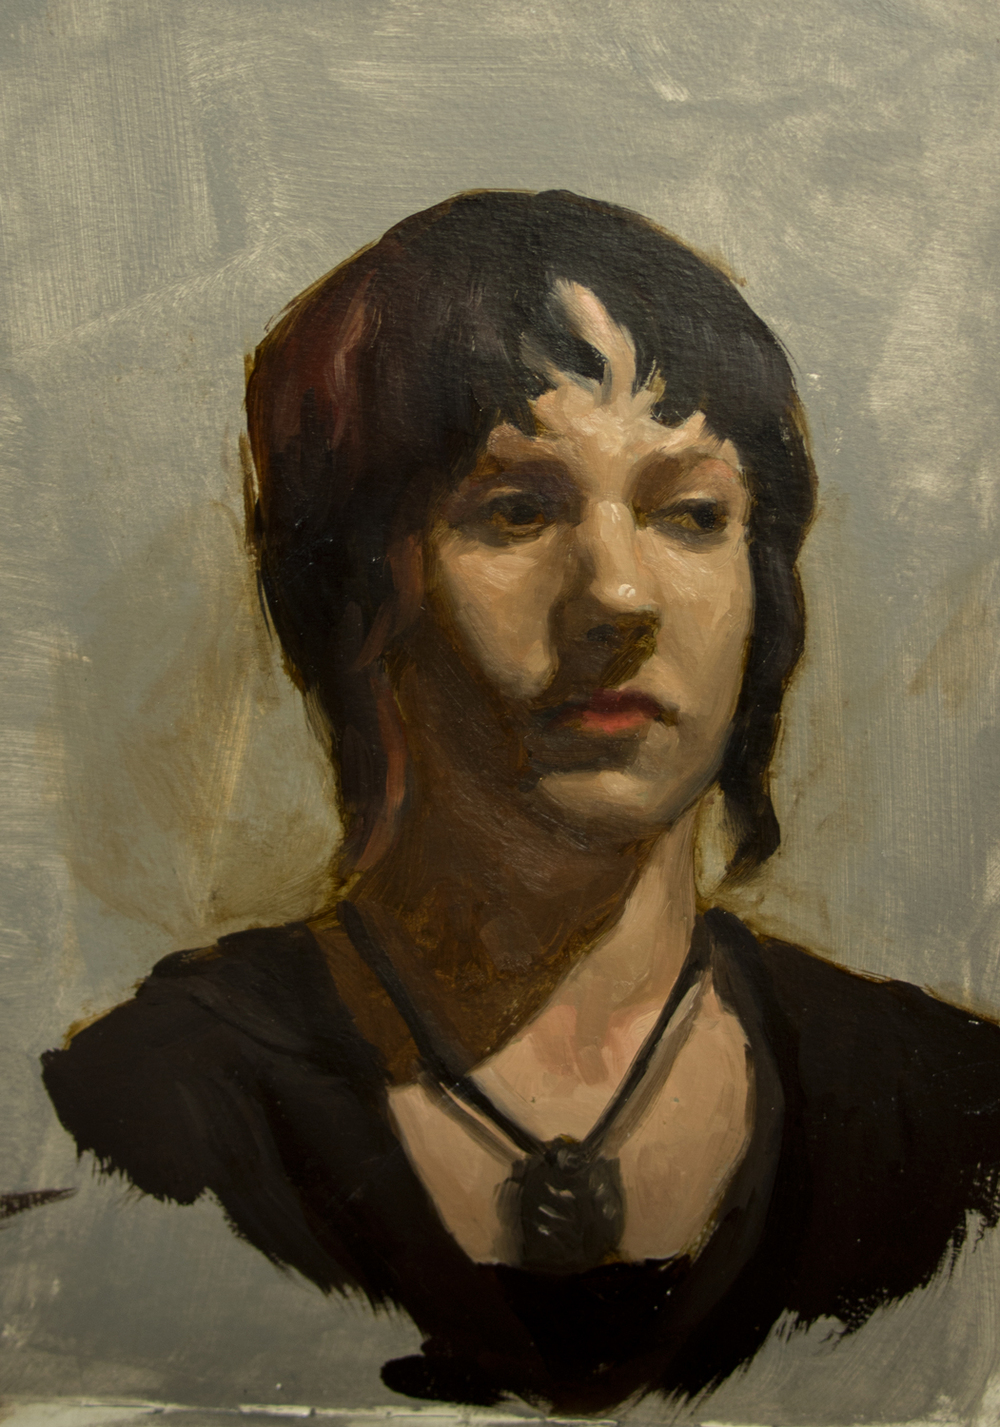 DawnCarlos_PortraitPainting01.jpg